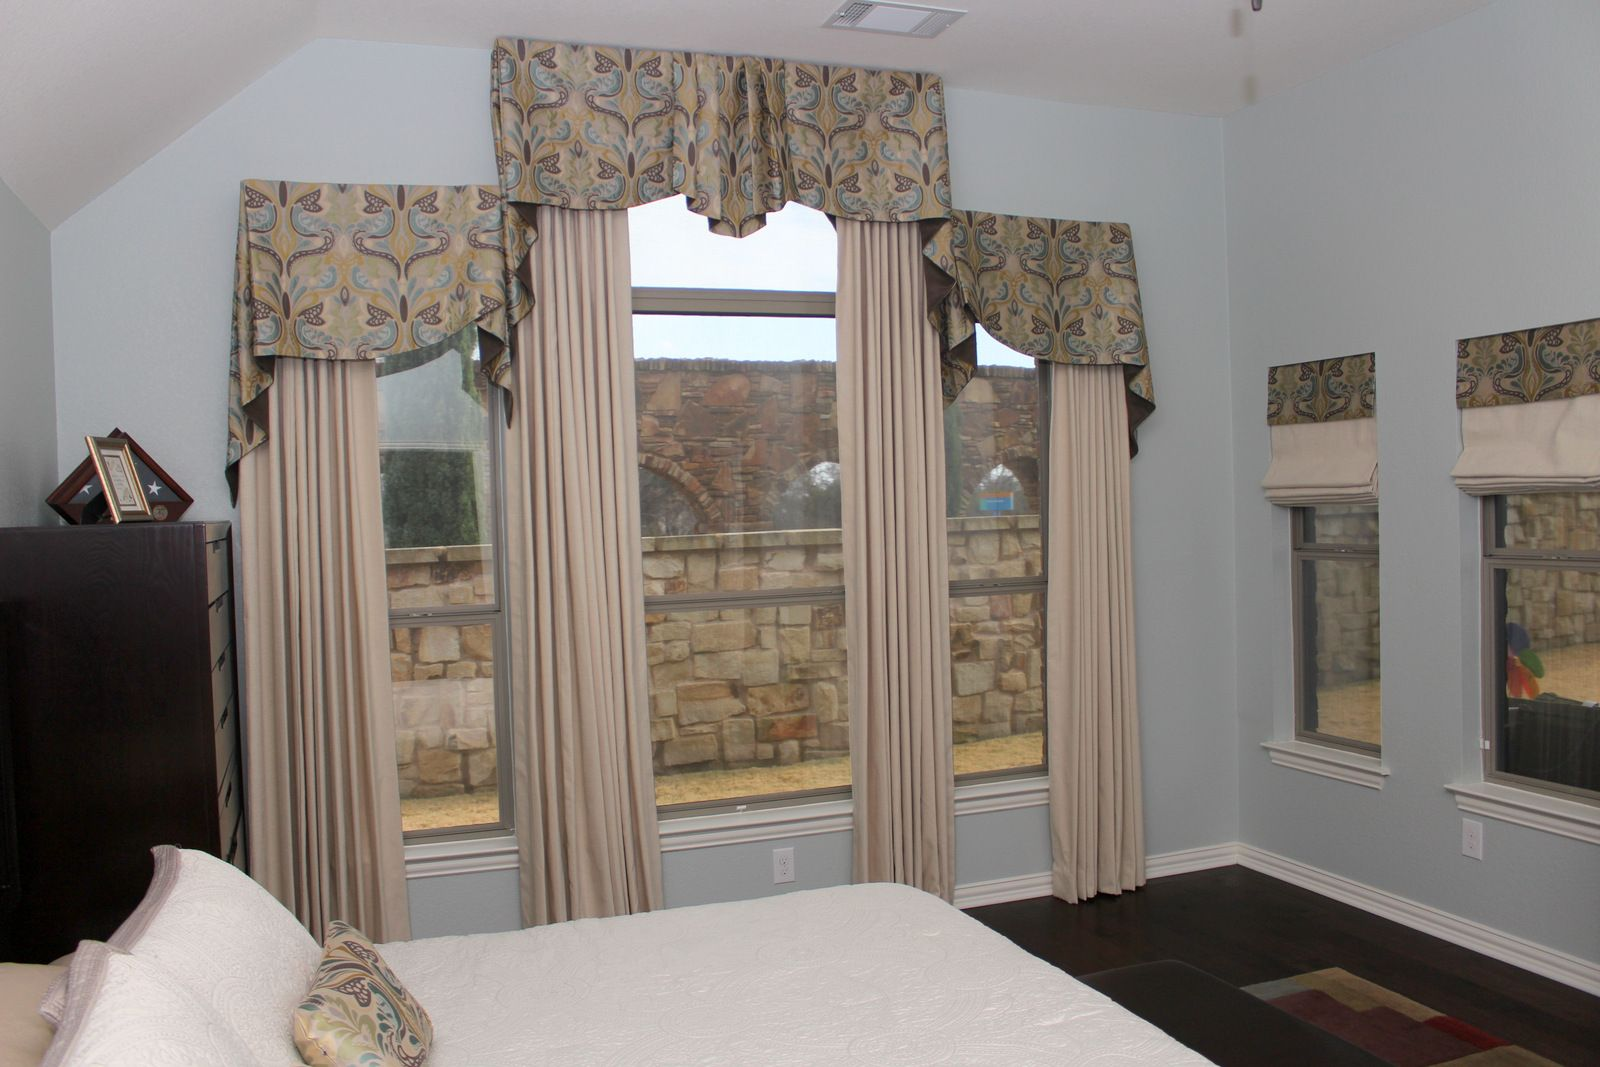 This Difficult Set Of Windows In A Master Bedroom Provided